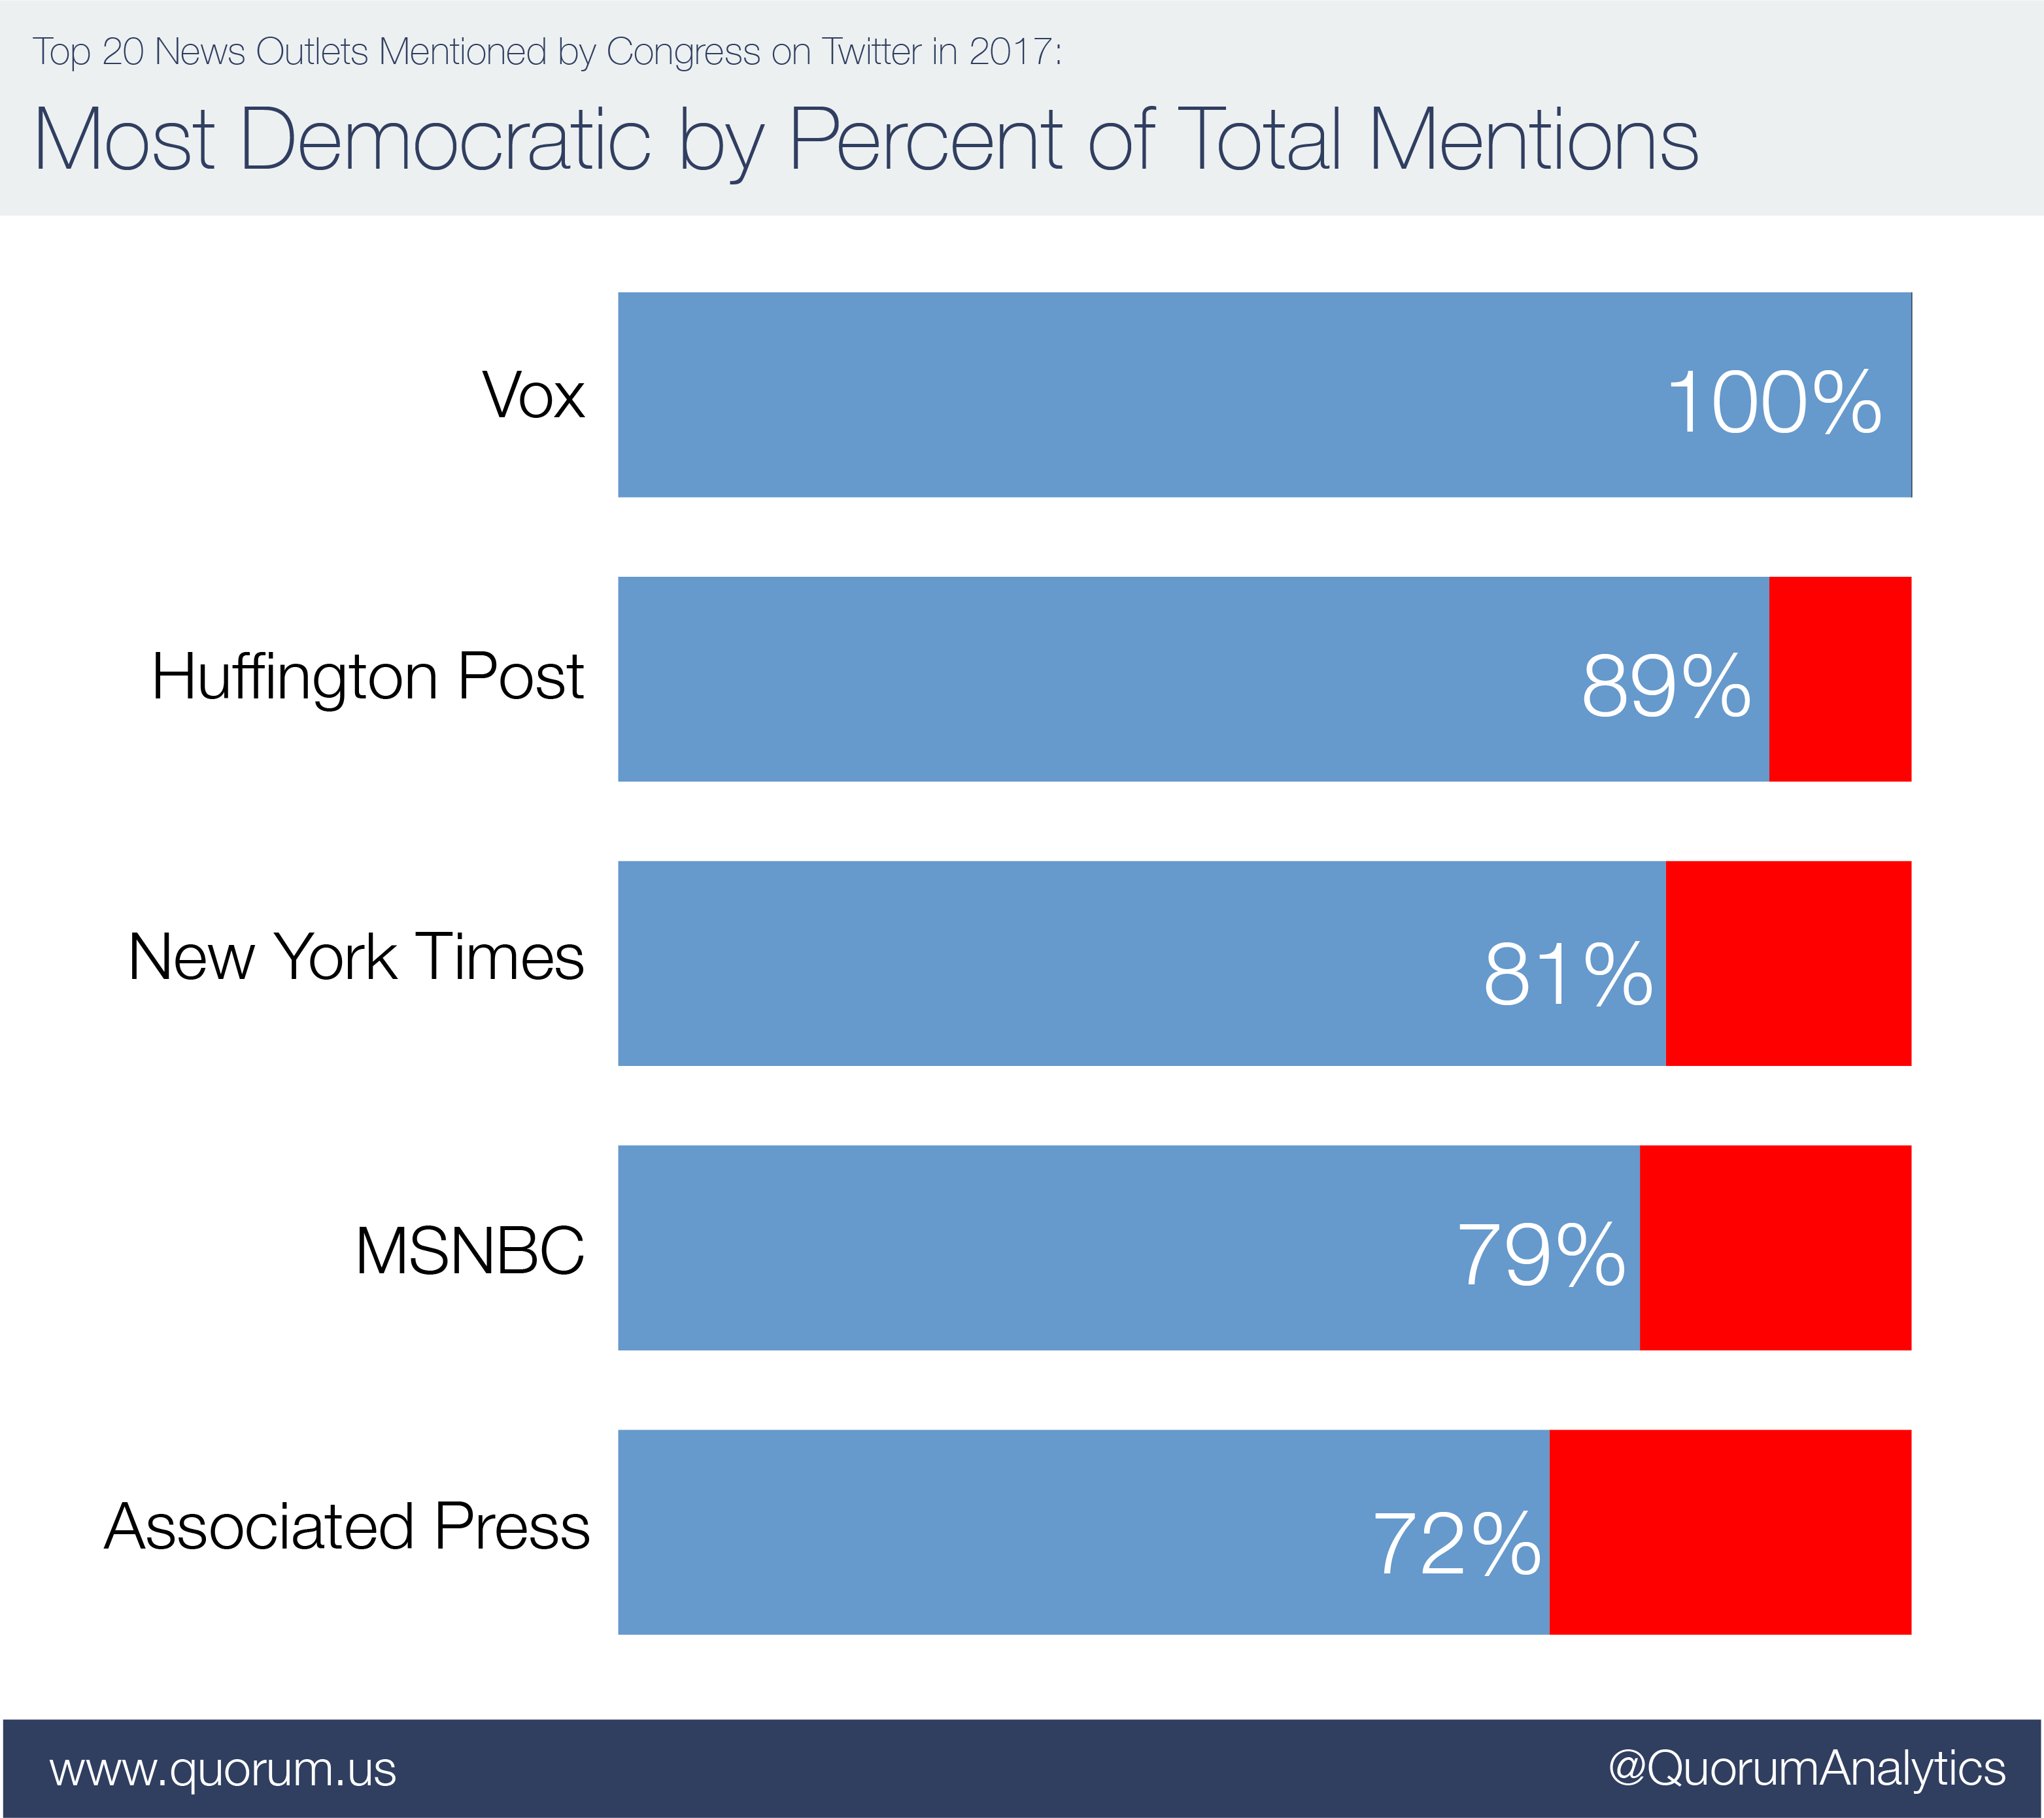 Top 20 news outlets mentioned by congress on twitter: Most Republican by percent of total mentions.